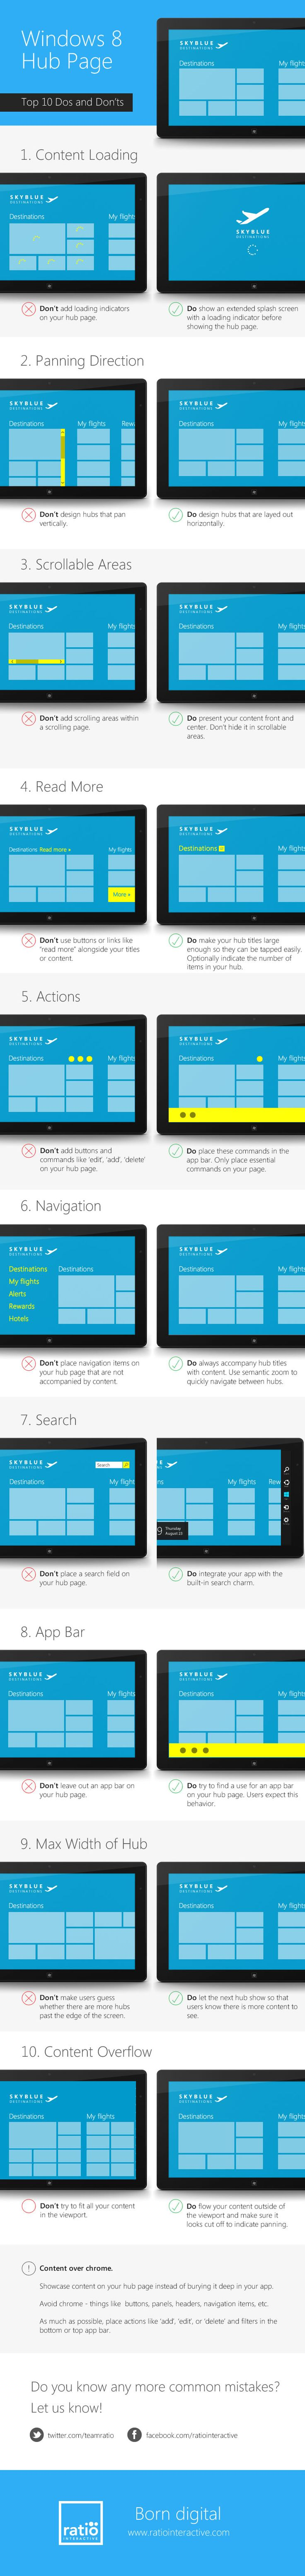 Windows 8 Hub Pages: Top 10 Dos and Don'ts